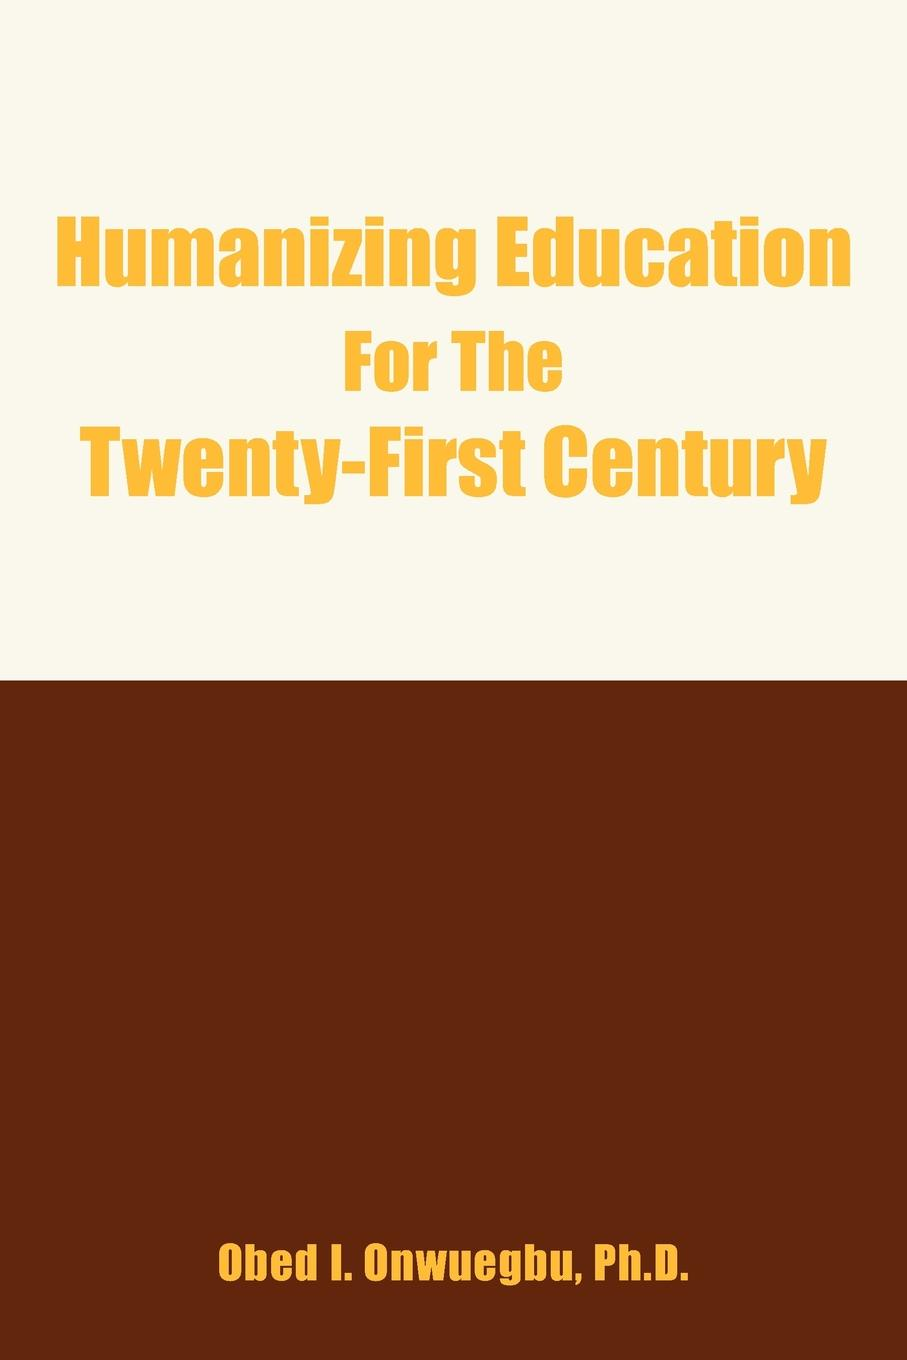 Obed I. Onwuegbu Humanizing Education for the Twenty-First Century mark philps kingdom come essential theology for the twenty first century